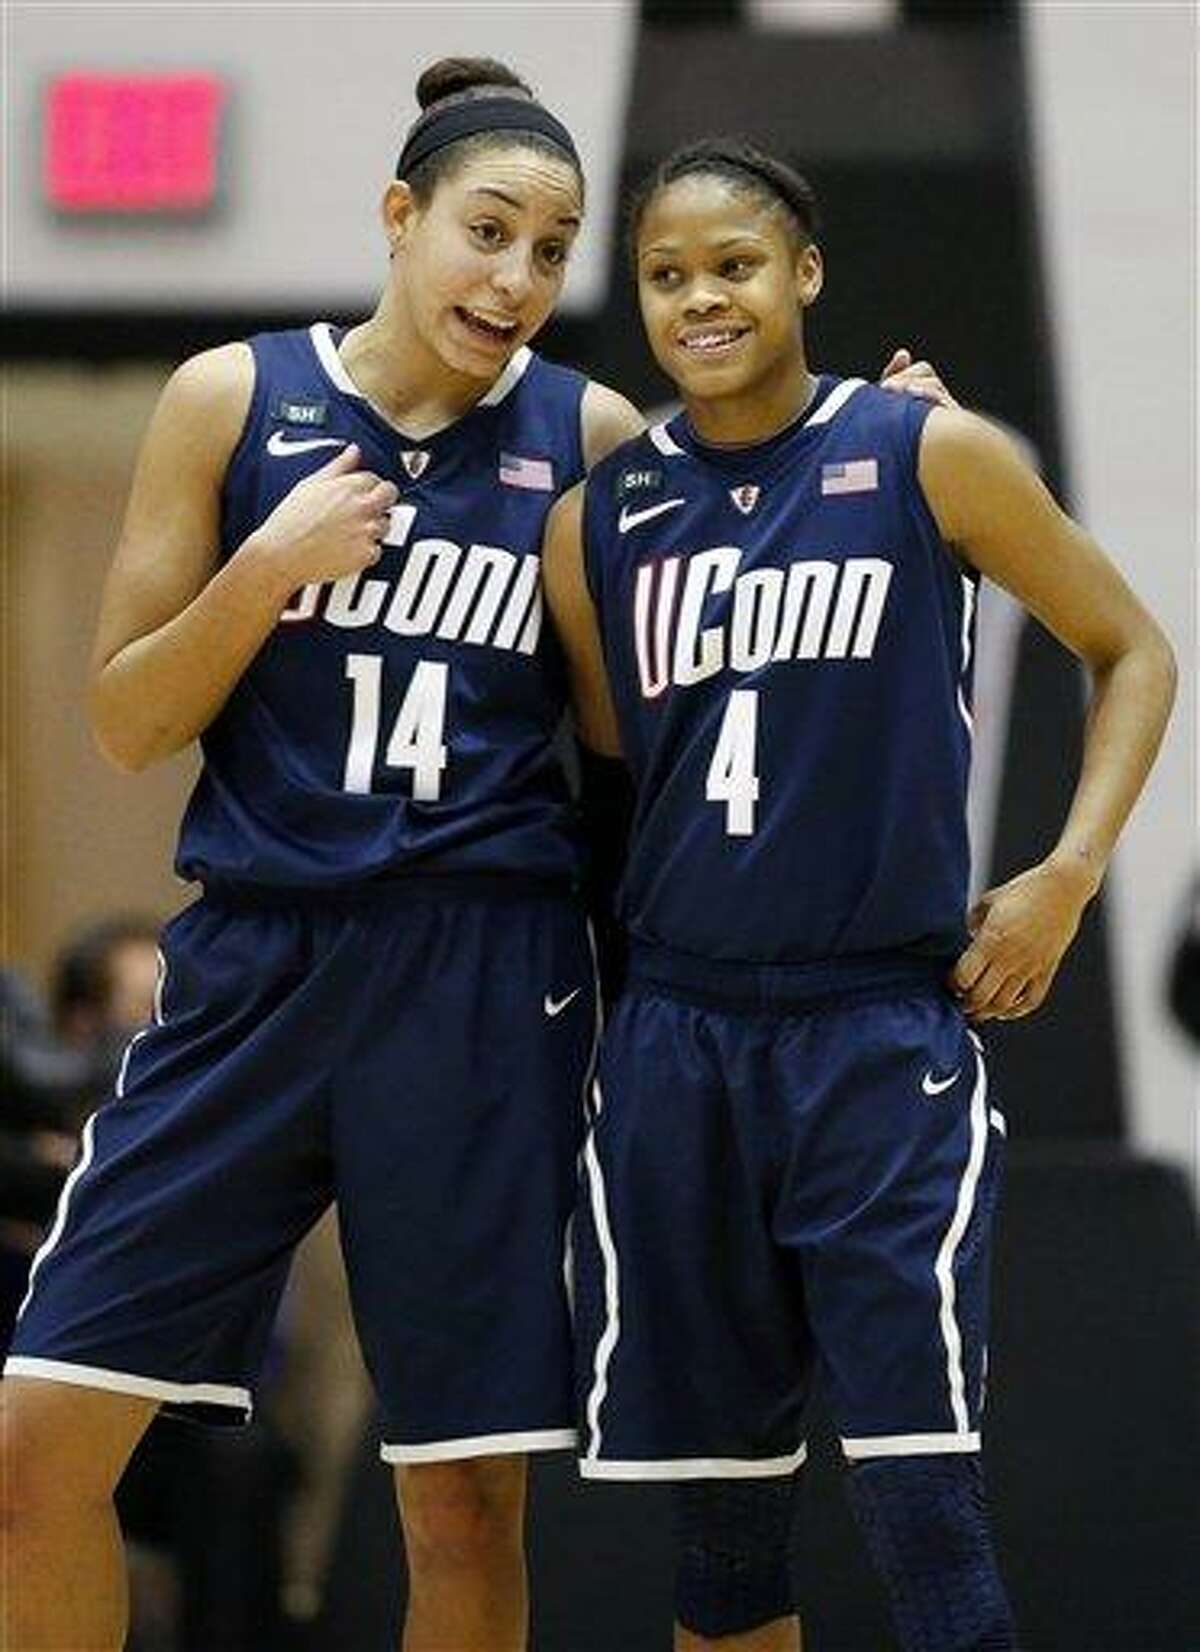 Connecticut's Bria Hartley (14) and Moriah Jefferson (4) talk during a timeout in the second half of an NCAA college basketball game against Providence in Providence, R.I., Tuesday, Feb. 12, 2013. Connecticut won 105-49. (AP Photo/Michael Dwyer)